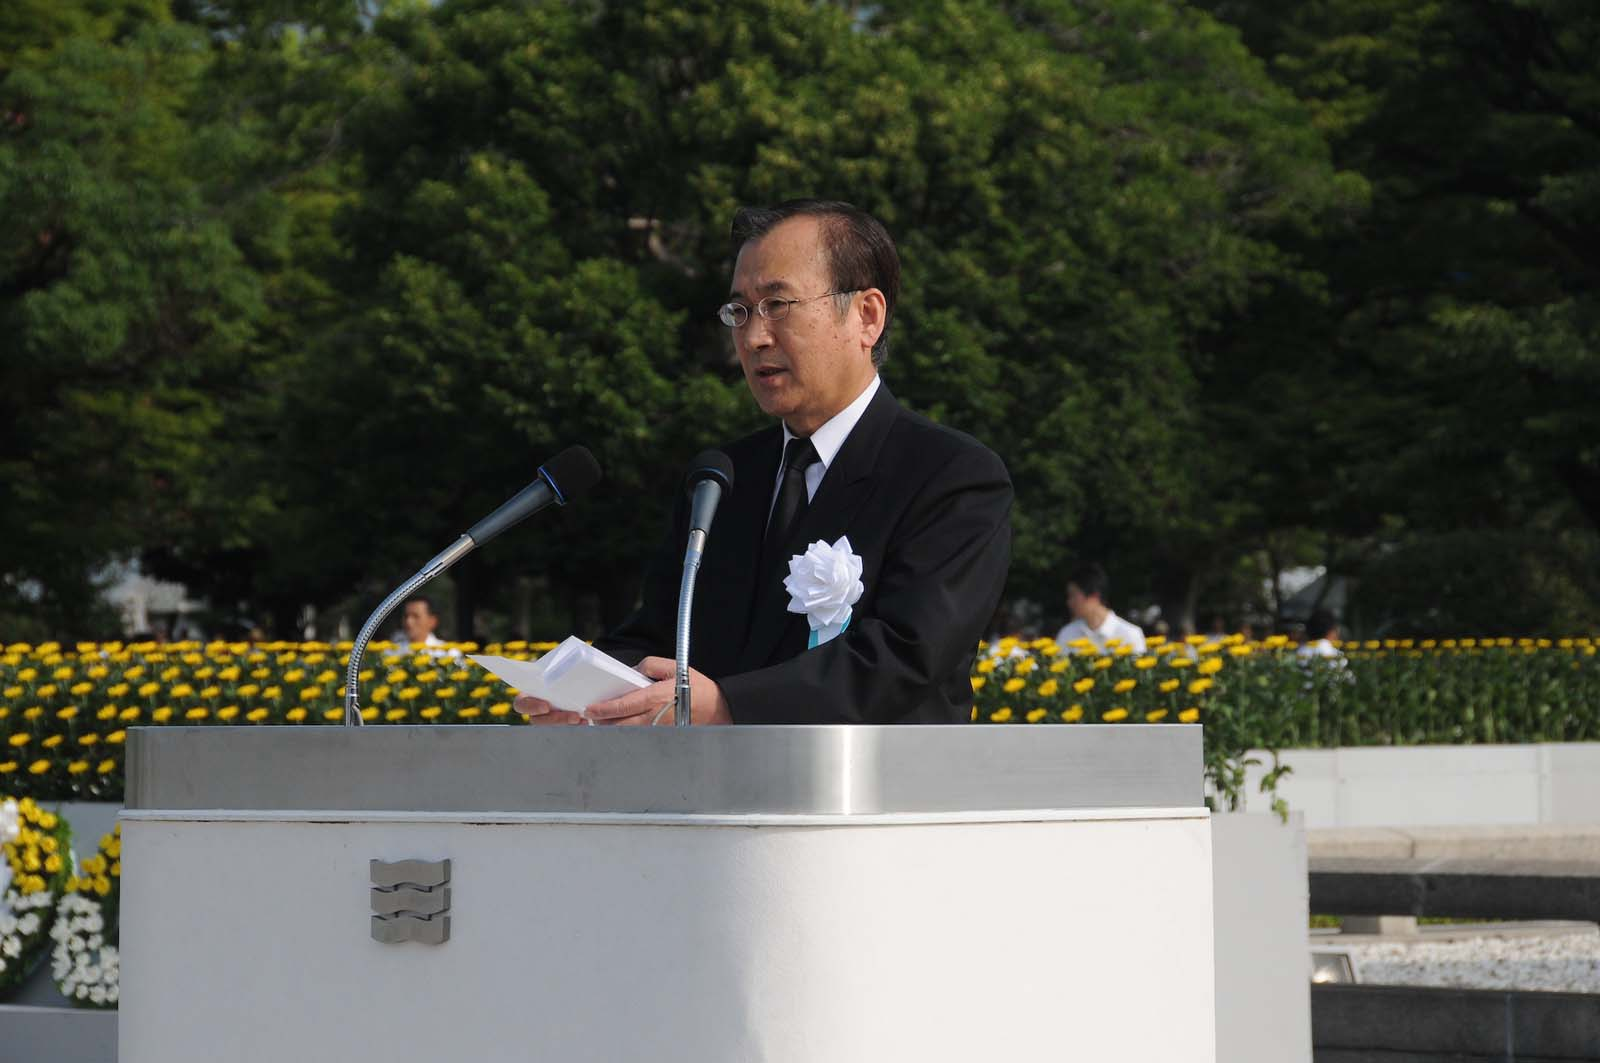 The peace declaration issued at the Peace Memorial Ceremony on August 6, 2008 is carried